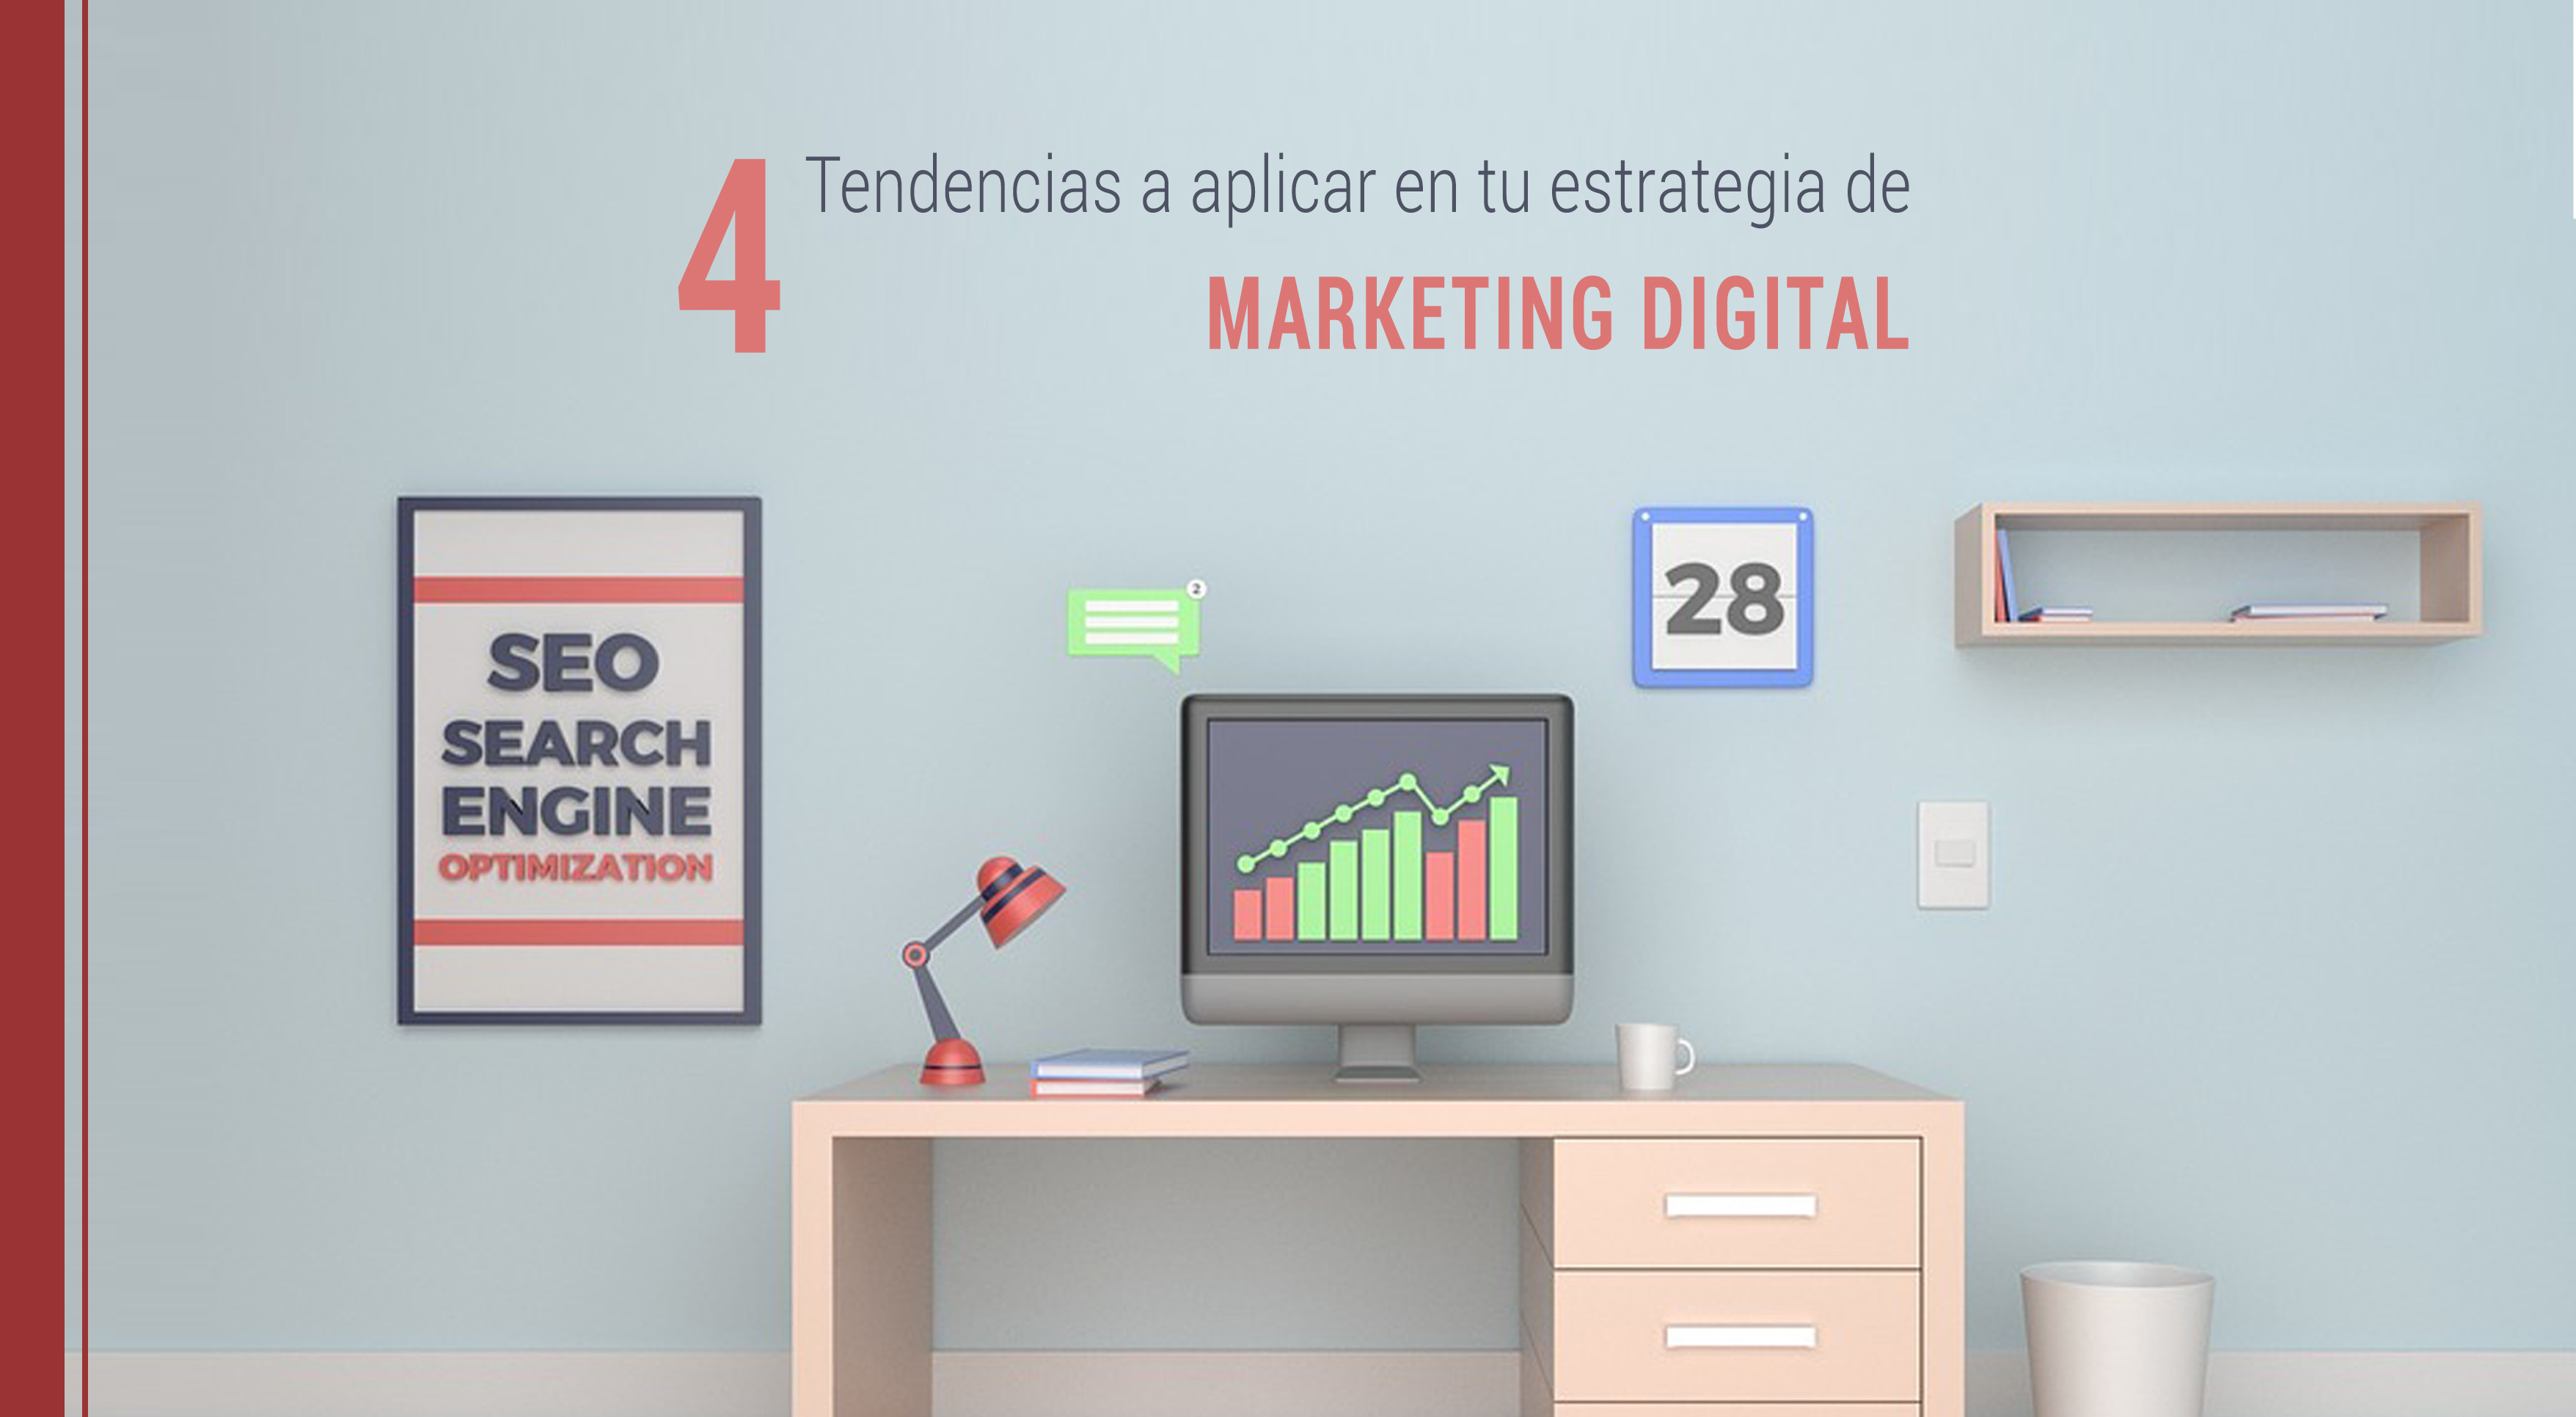 tendencias en la estrategia de marketing digital